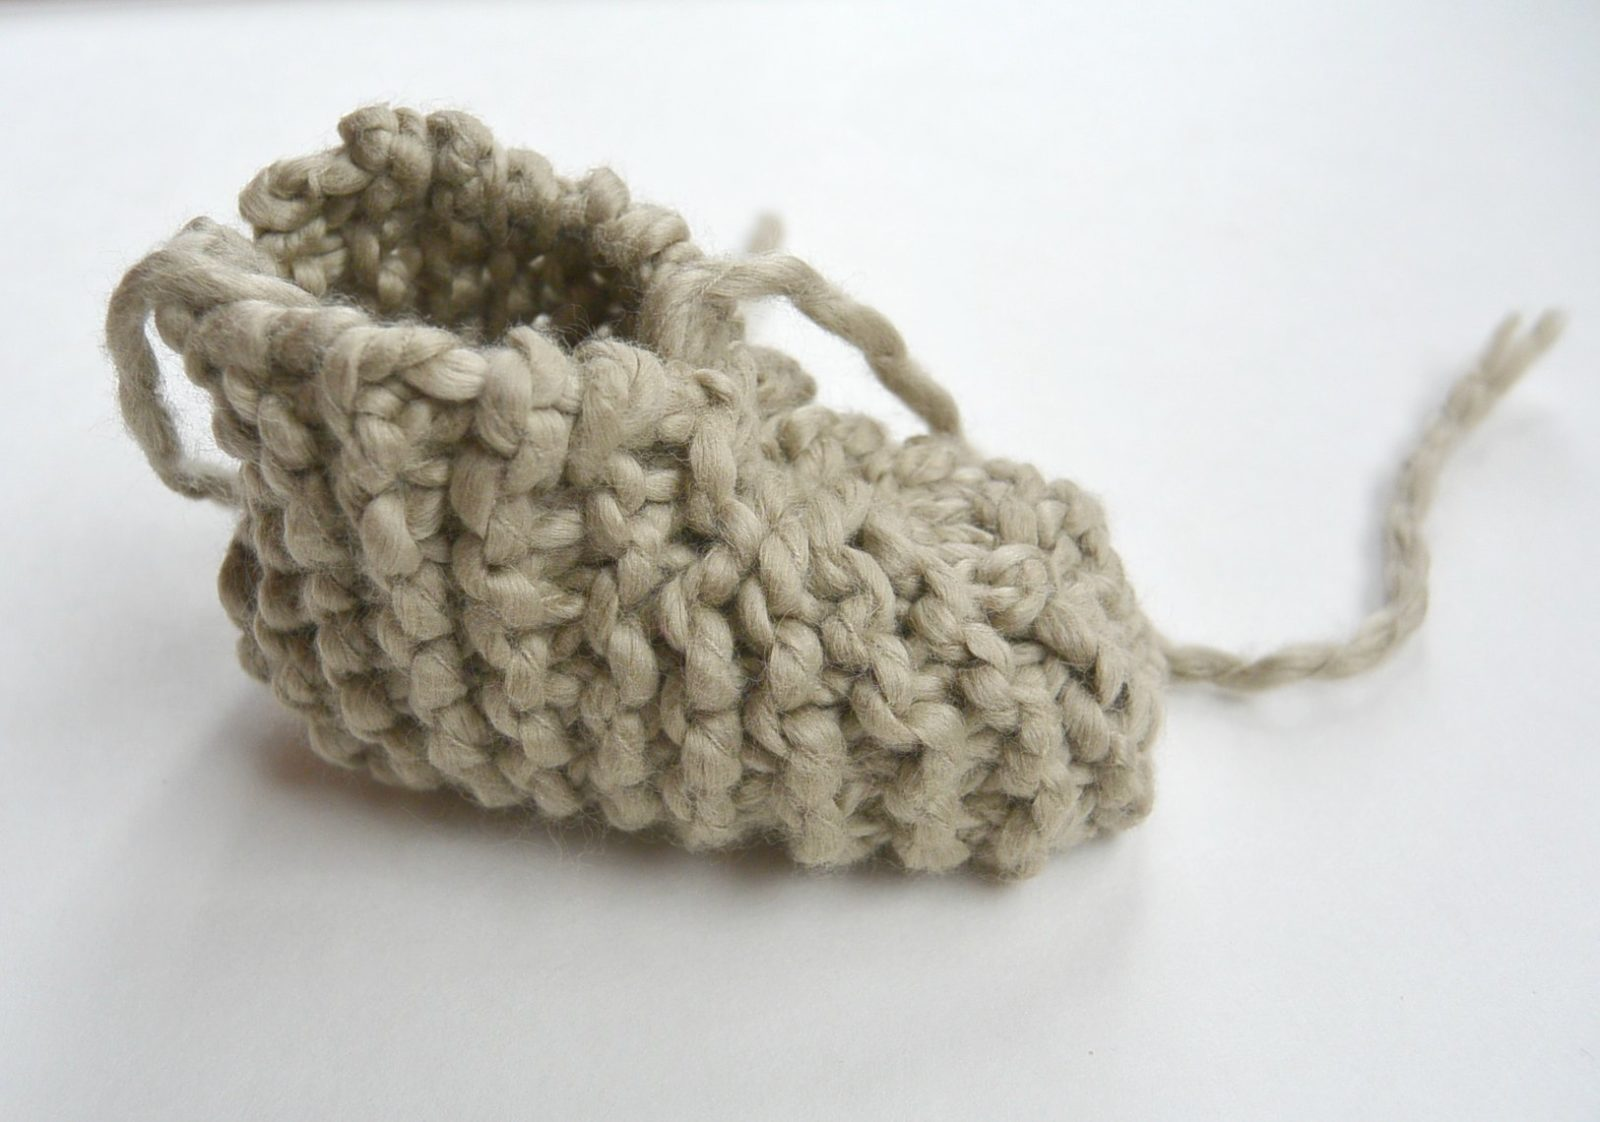 Knitting Patterns For Baby Booties Beginner : Beginner Knit Baby Booties ?Moccasins?